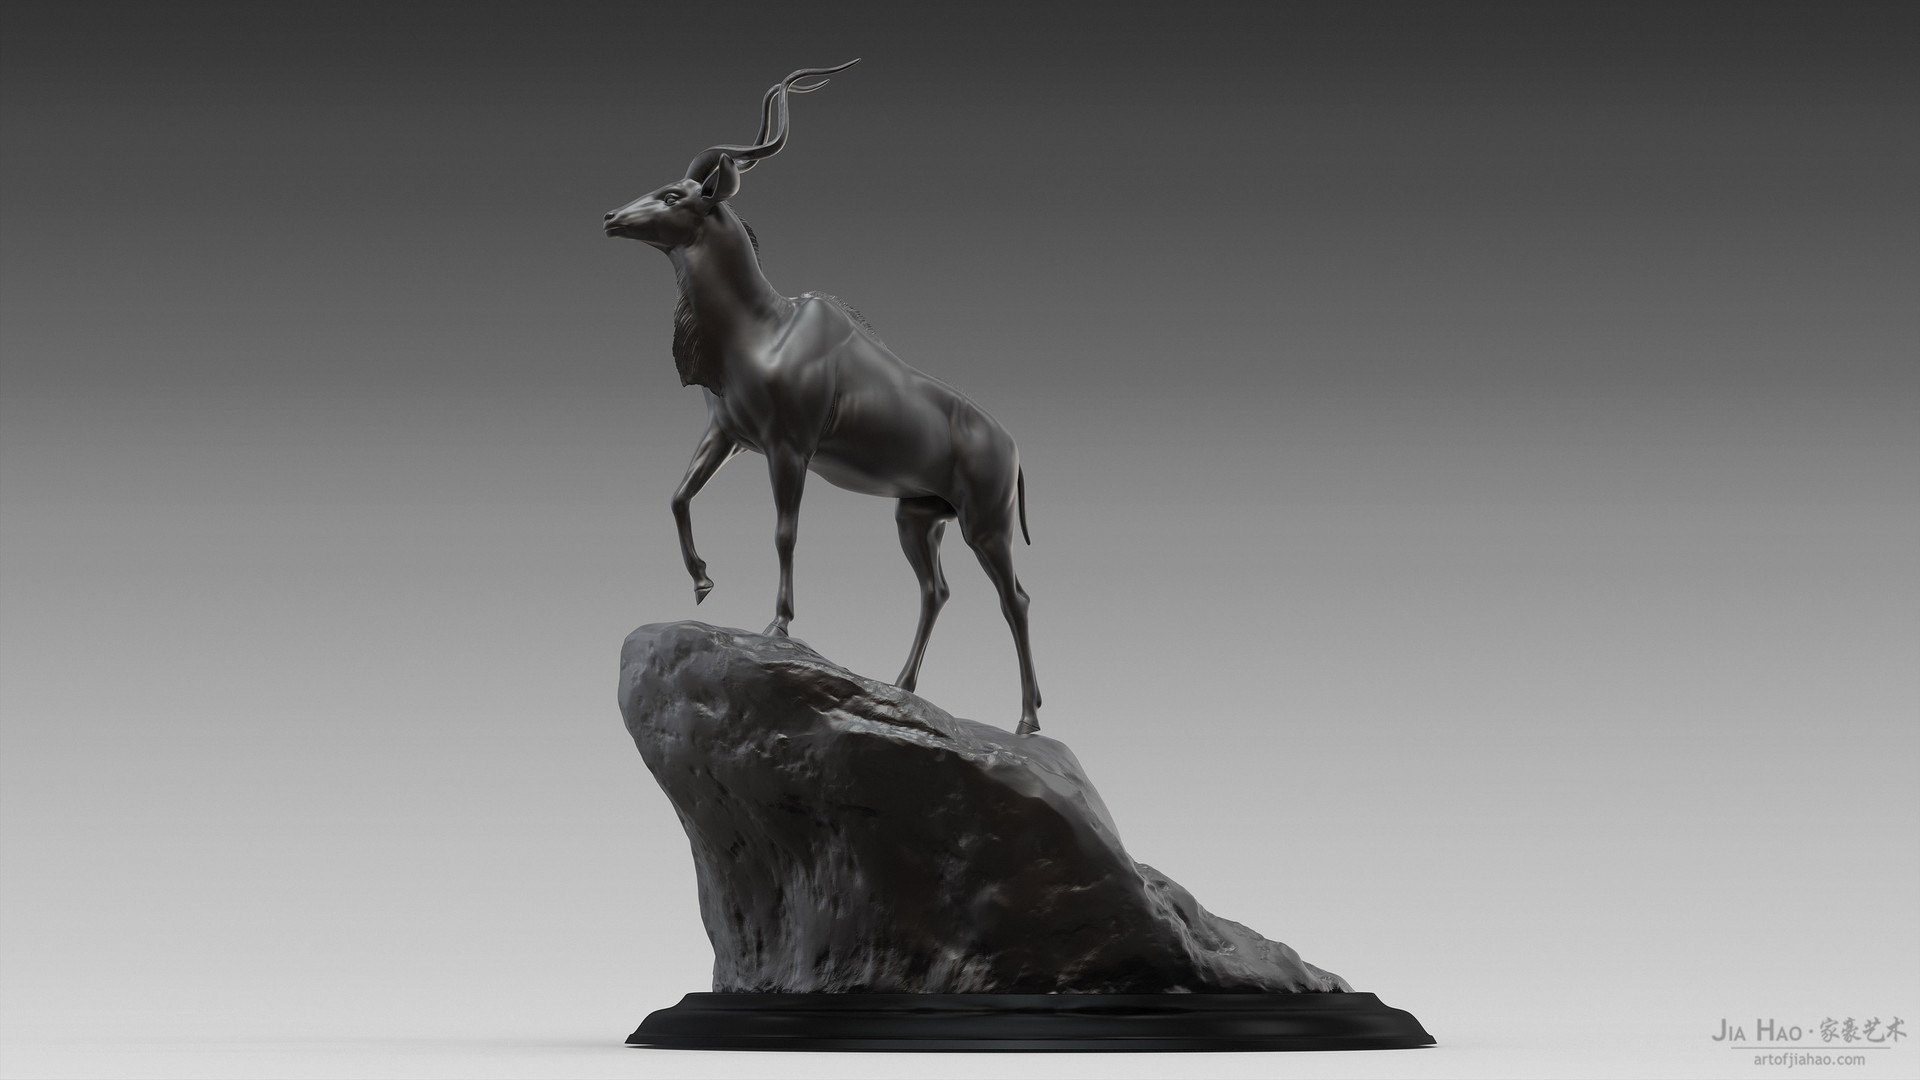 Jia hao greaterkudu digitalsculptureb 01